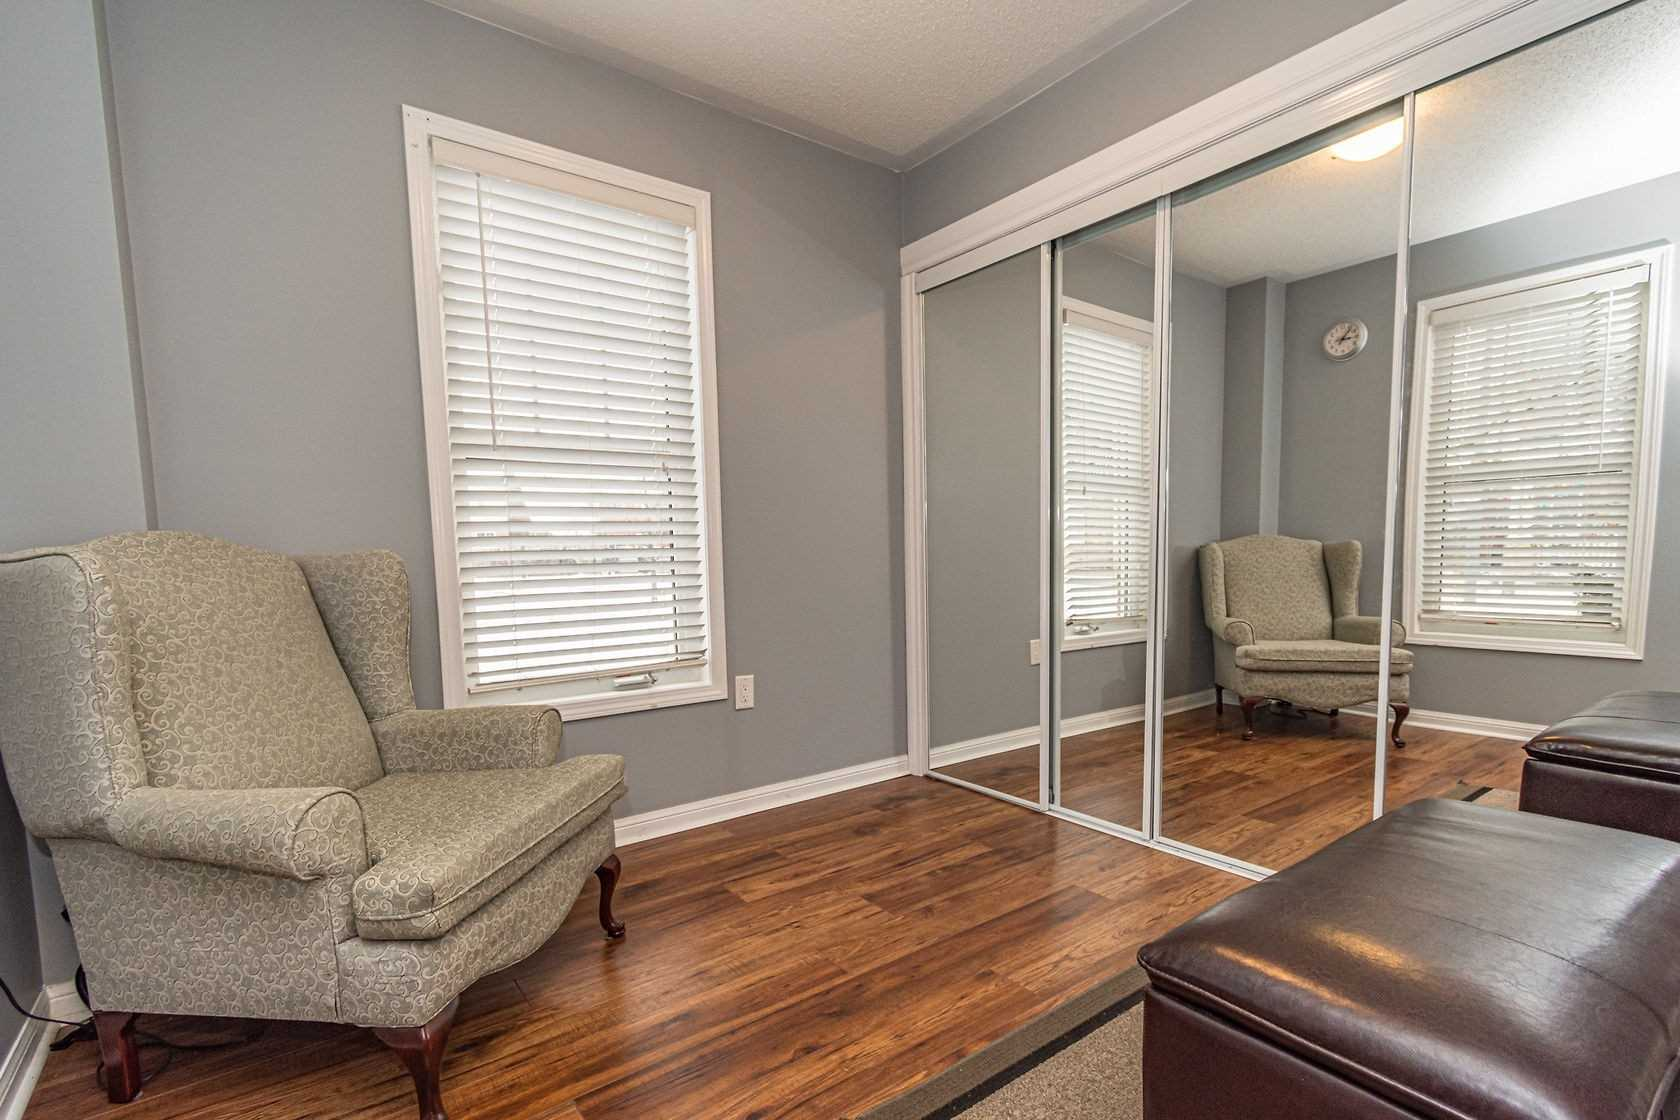 Image 15 of 20 showing inside of 3 Bedroom Att/Row/Twnhouse 3-Storey house for sale at 912 Ambroise Cres, Milton L9T0M2